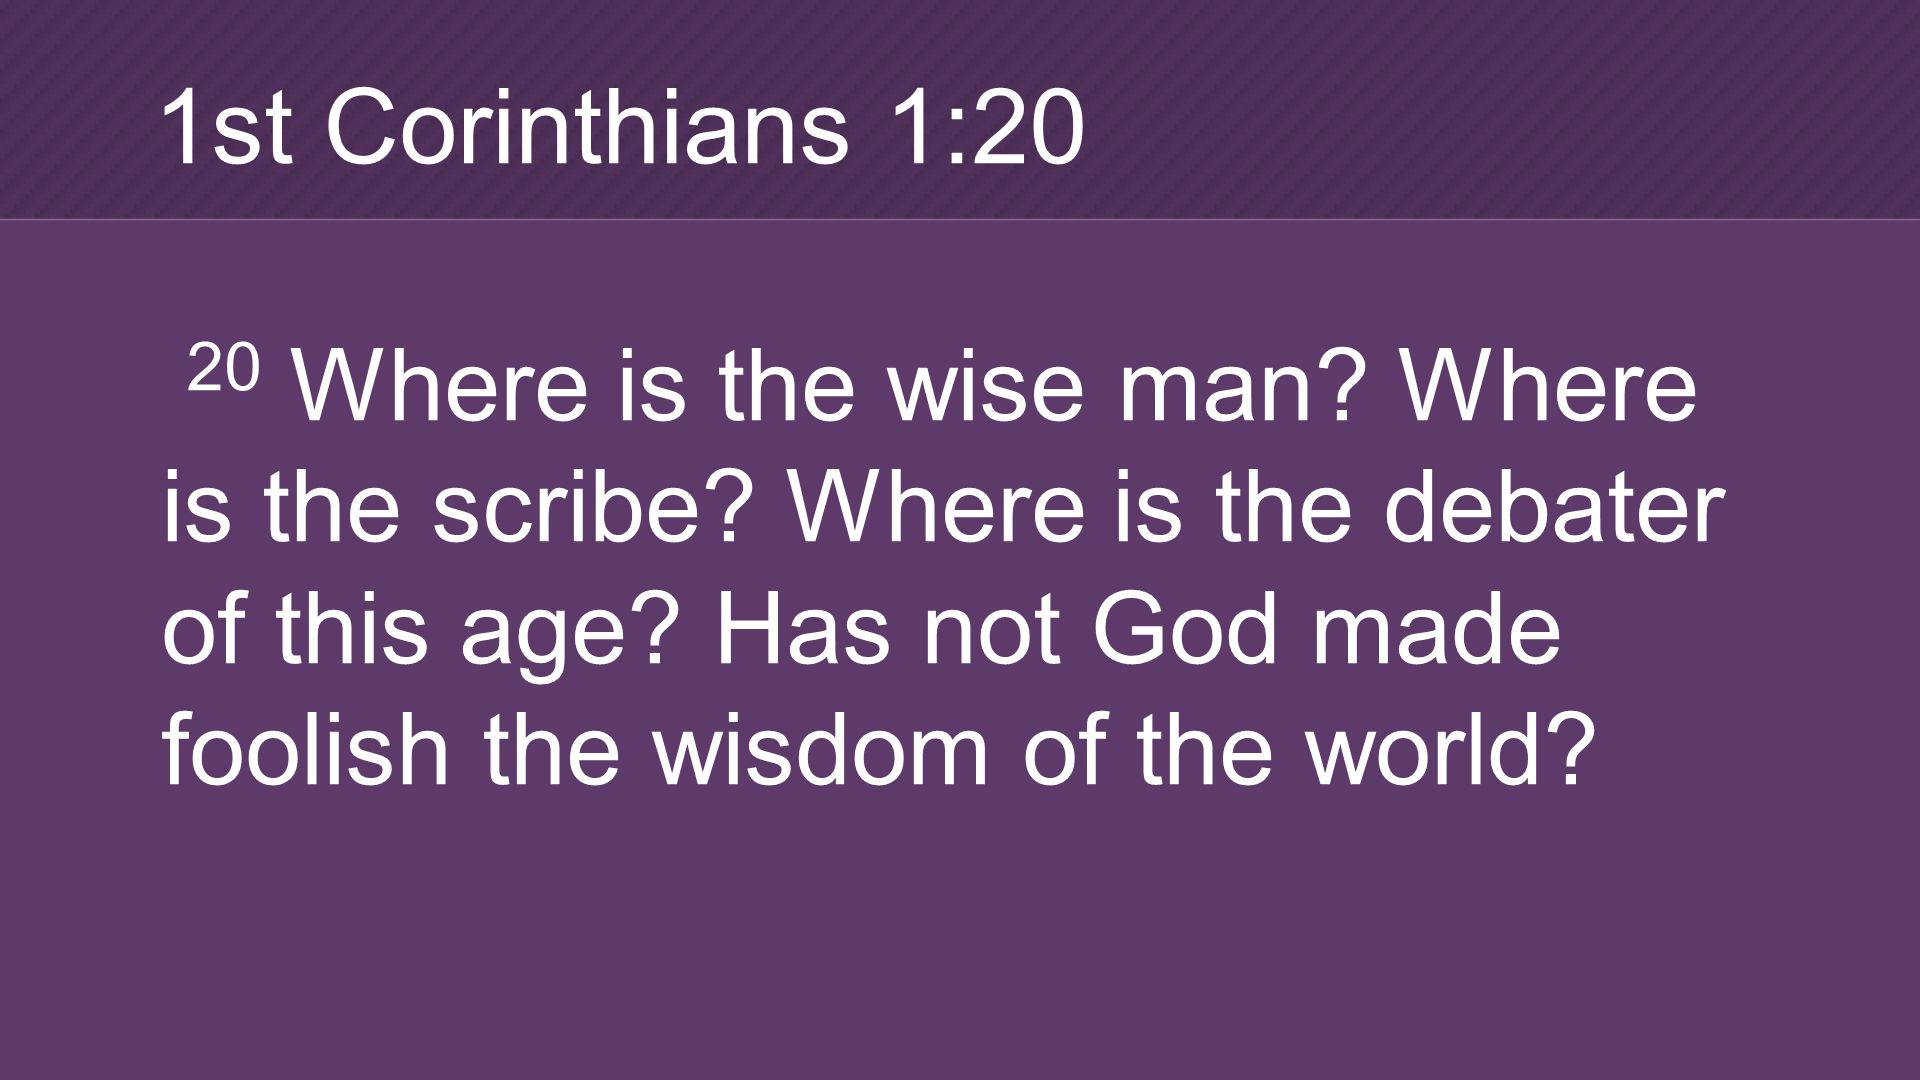 20 Where is the wise man. Where is the scribe. Where is the debater of this age.